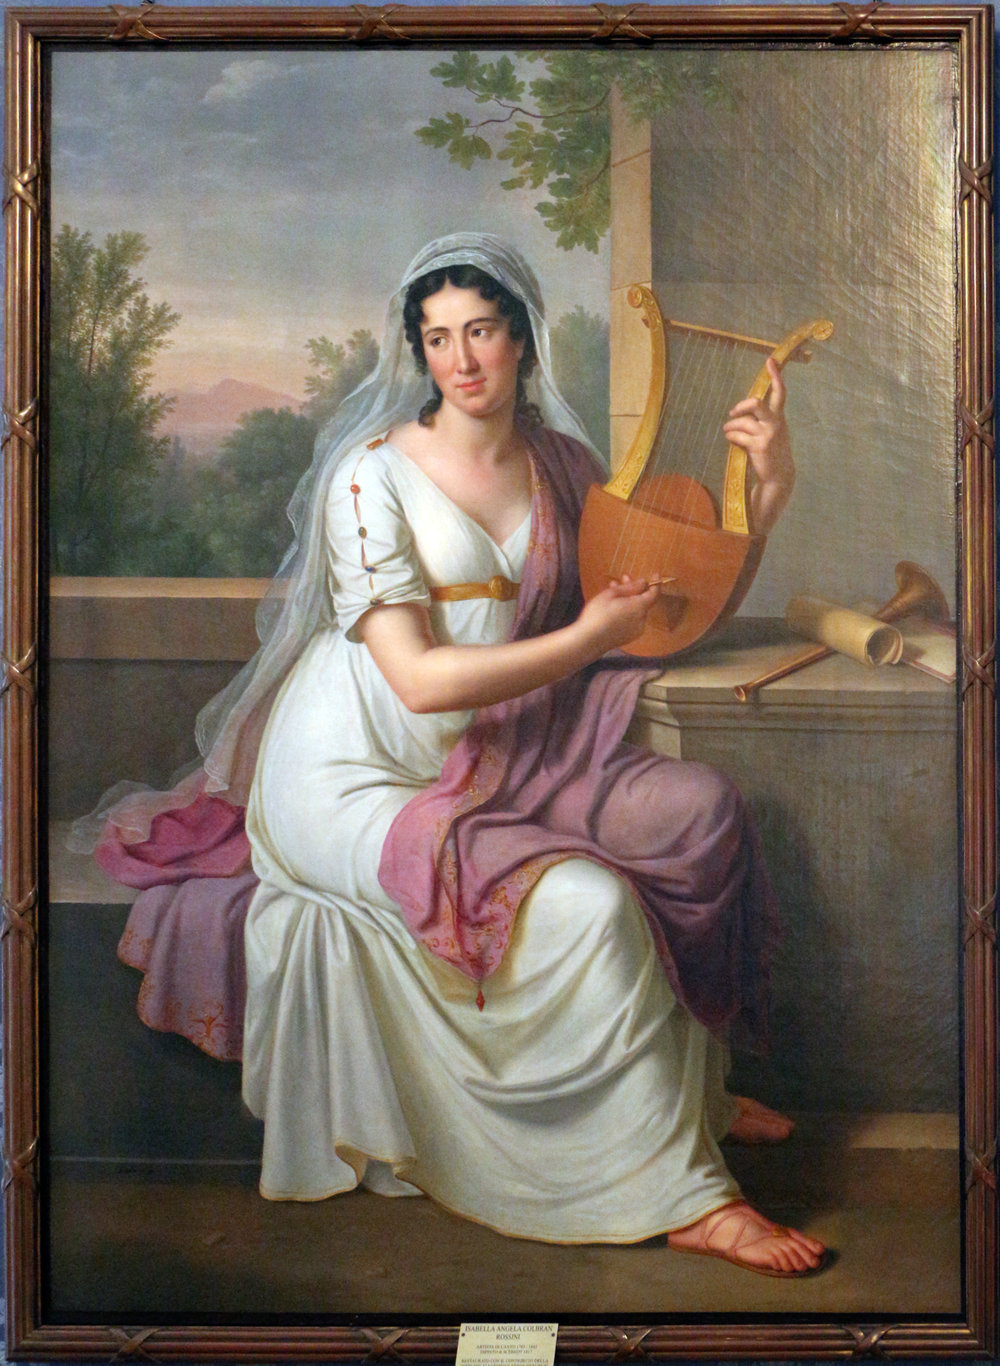 Isabella Colbran - Born: February 2, 1785, Madrid, SpainDied: October 7, 1845, Bologna, Italy